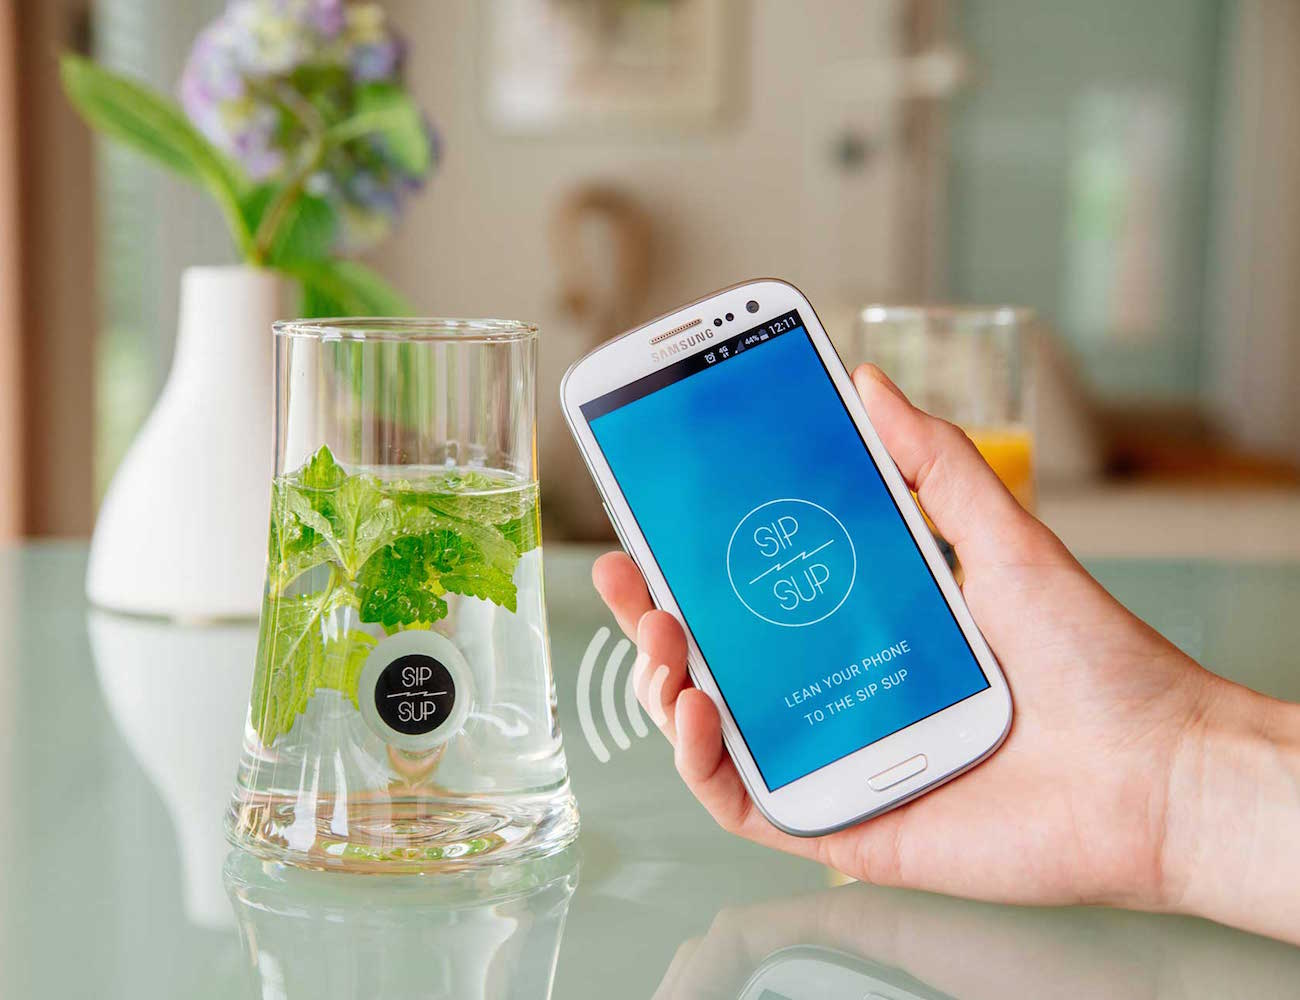 sipsup-mobile-connected-drinking-glass-01